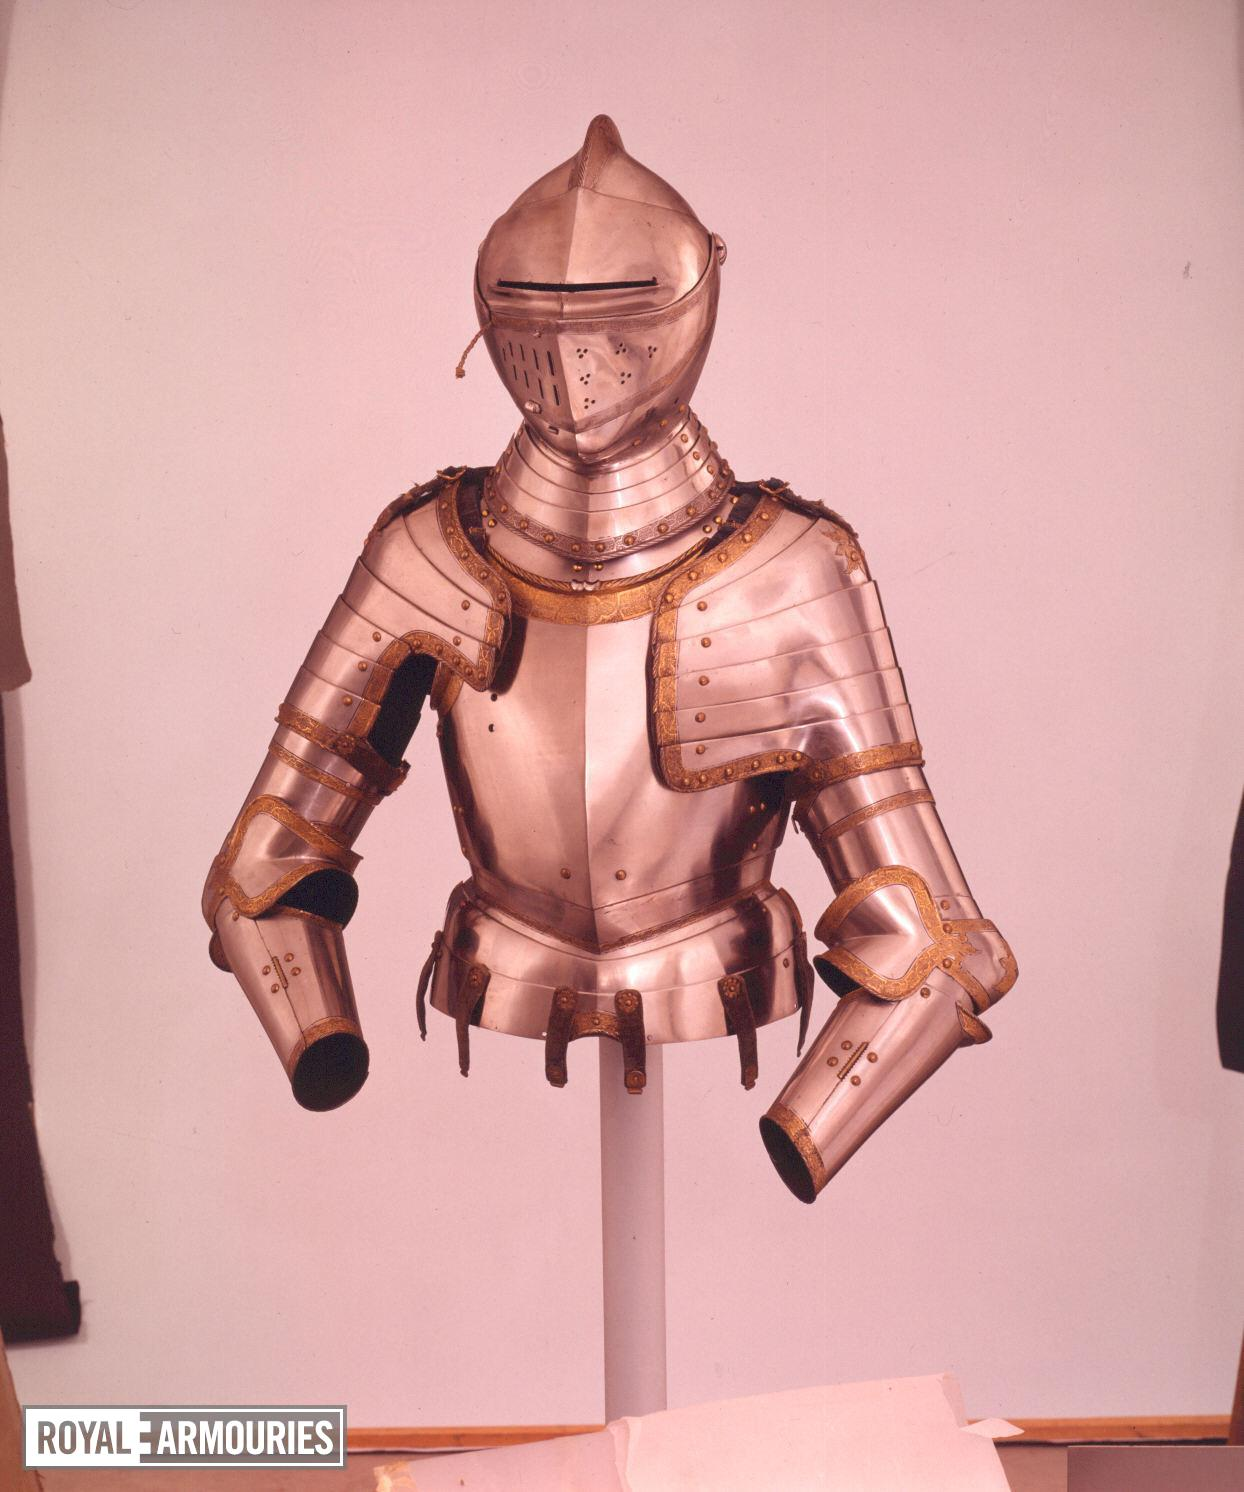 Portions of an armour